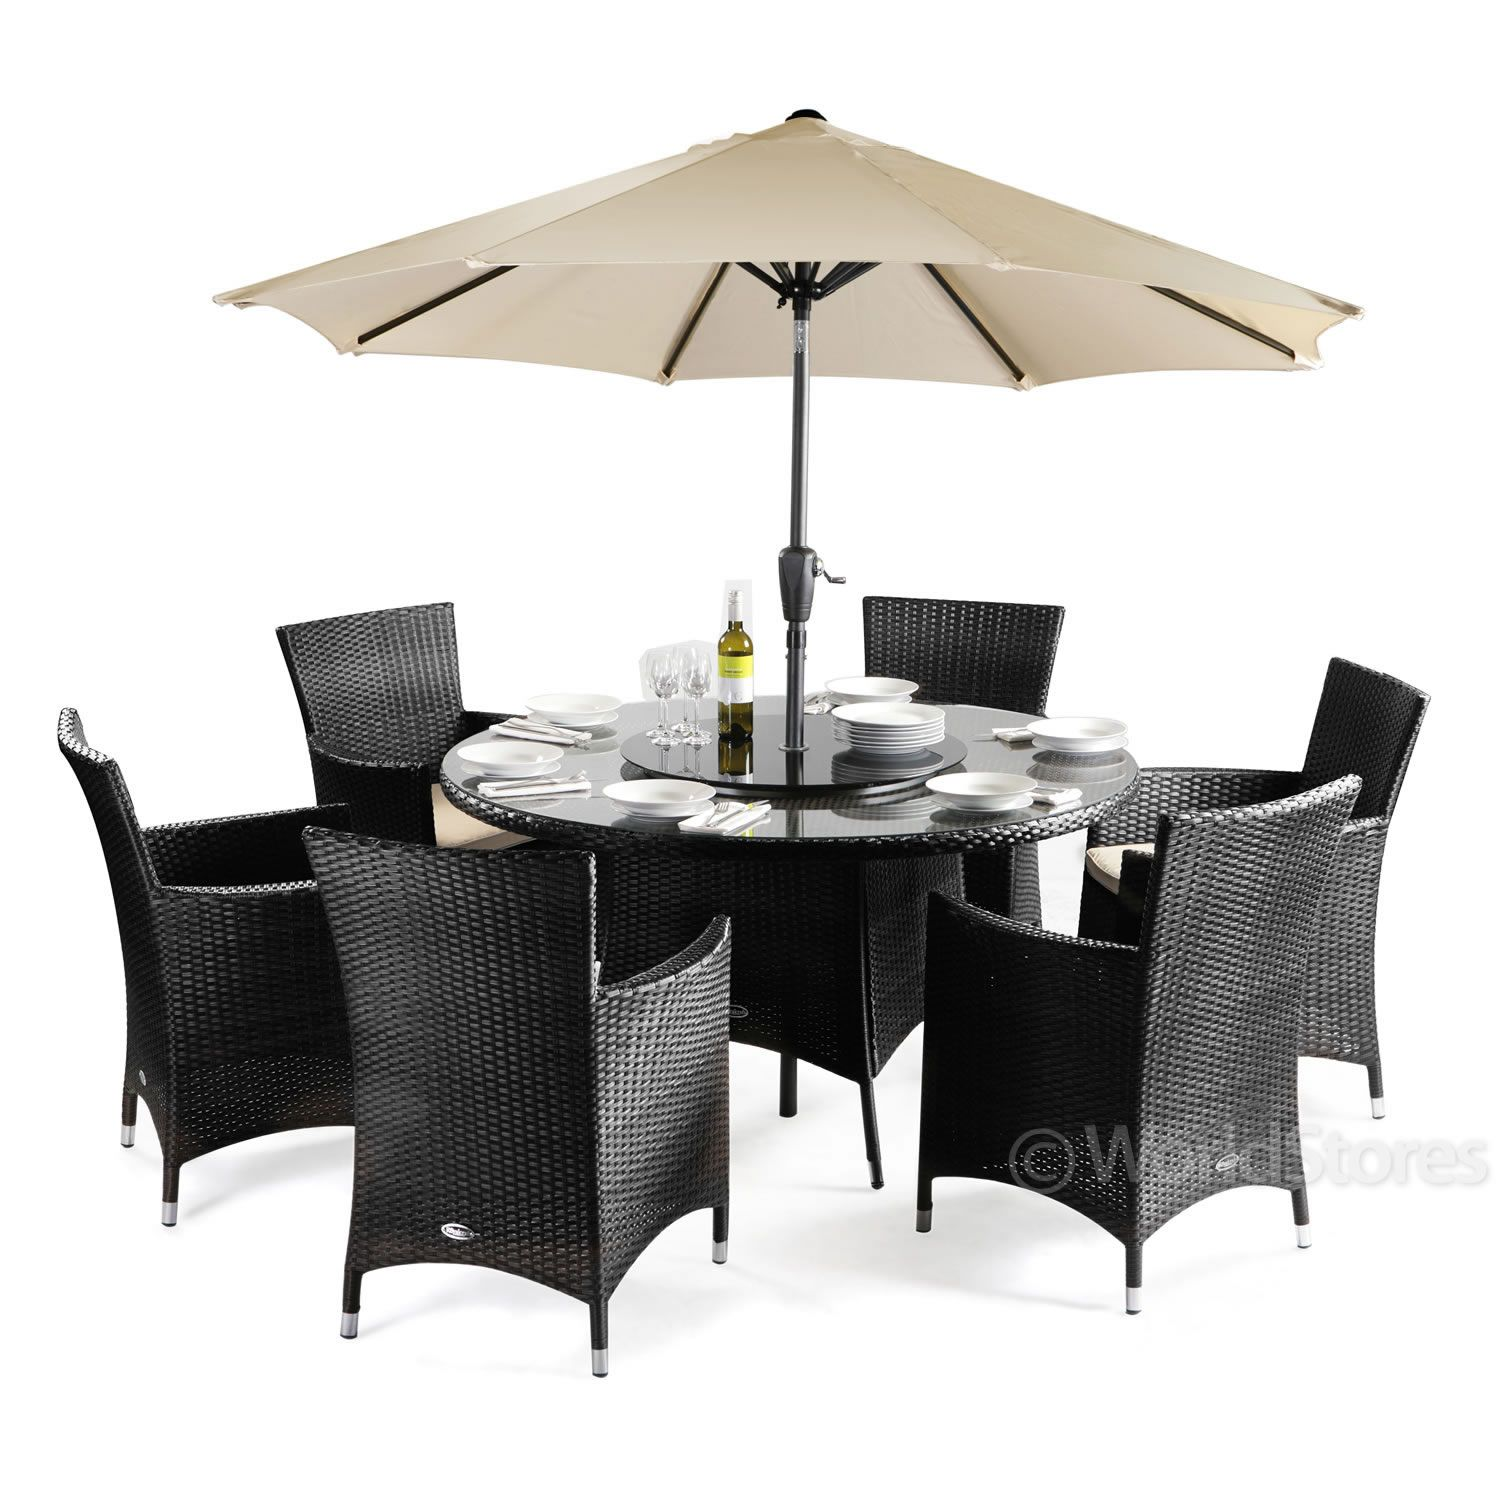 rattan round 6 chairs patio furniture set